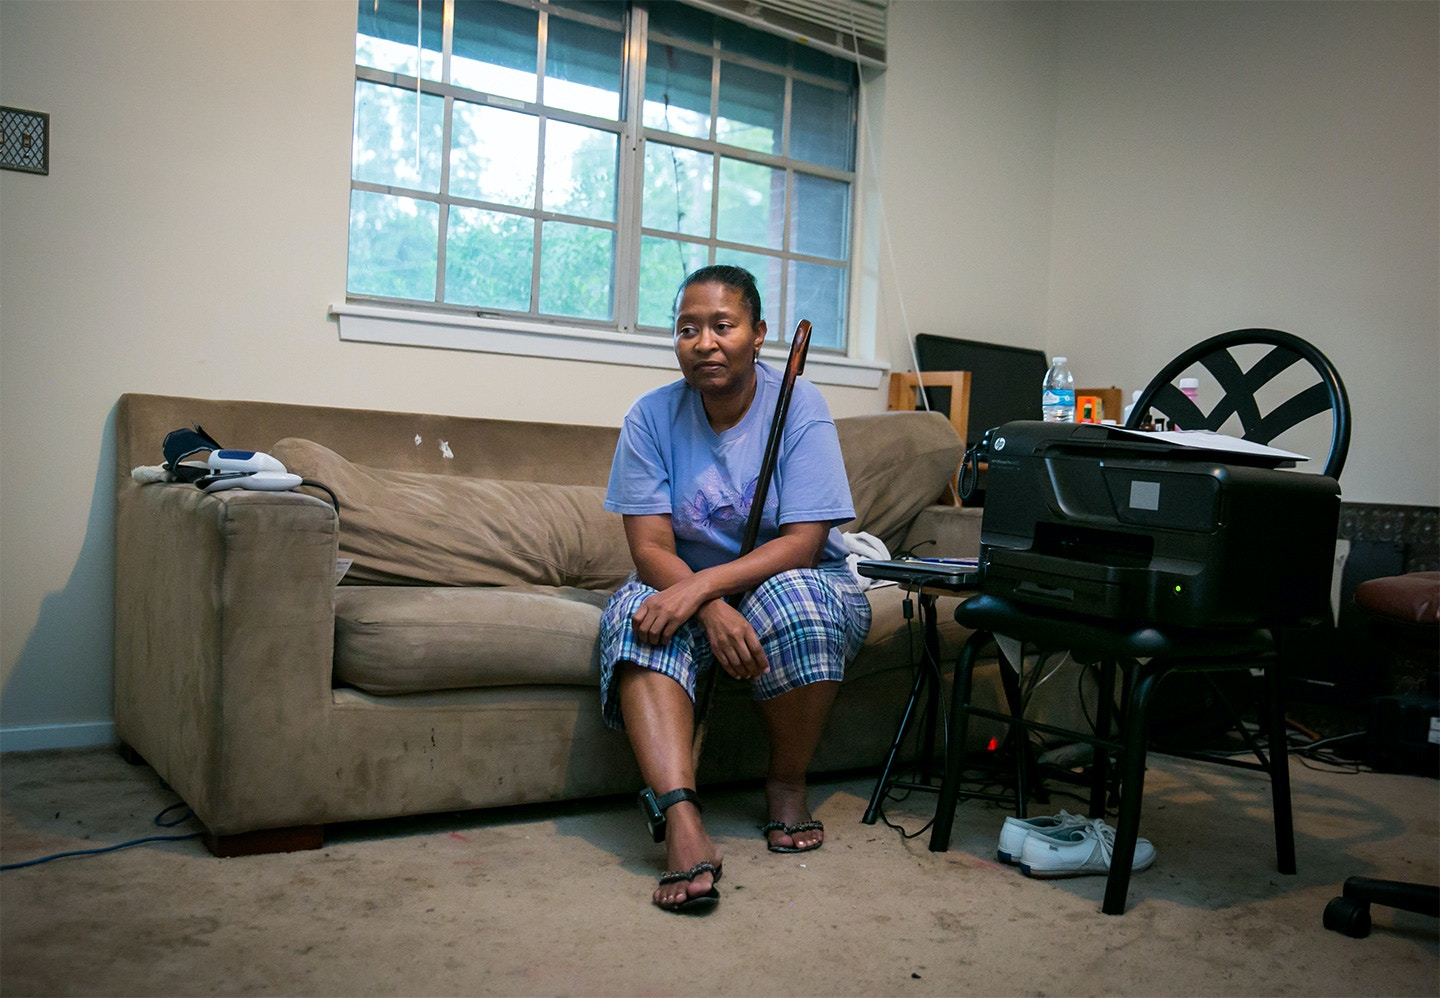 Tennie White at her home in Jackson, Mississippi. Currently on house arrest after 32 months in prison, Tennie cannot walk farther than her mailbox. Ms. White helped to uncover contaminated areas from the Kerr McGee site and was later charged with tampering with evidence during court trials against the company for environmental pollution. During her prison sentencing, the judge assured Tennie she would receive medical attention for her cataracts, for which she was already planning to undergo surgery. Being refused the appropriate medical care, she is now legally blind after being released to her home. Now, Tennie uses her living room as a home office to continue fighting against the company for health issues and contamination caused from creosote pollution in Columbus, Mississippi.